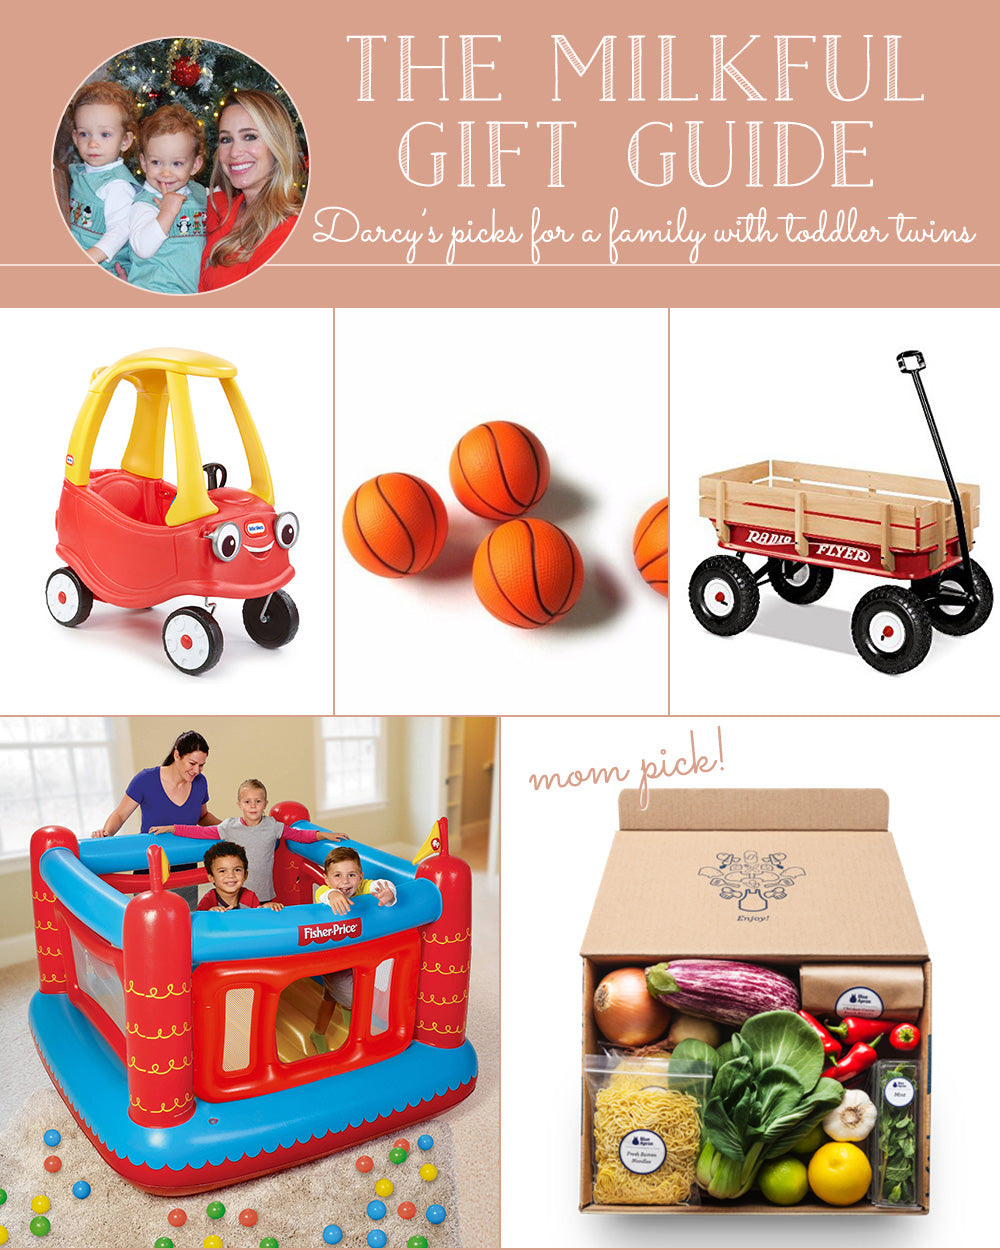 The Milkful Gift Guide for a Family with Toddler Twins